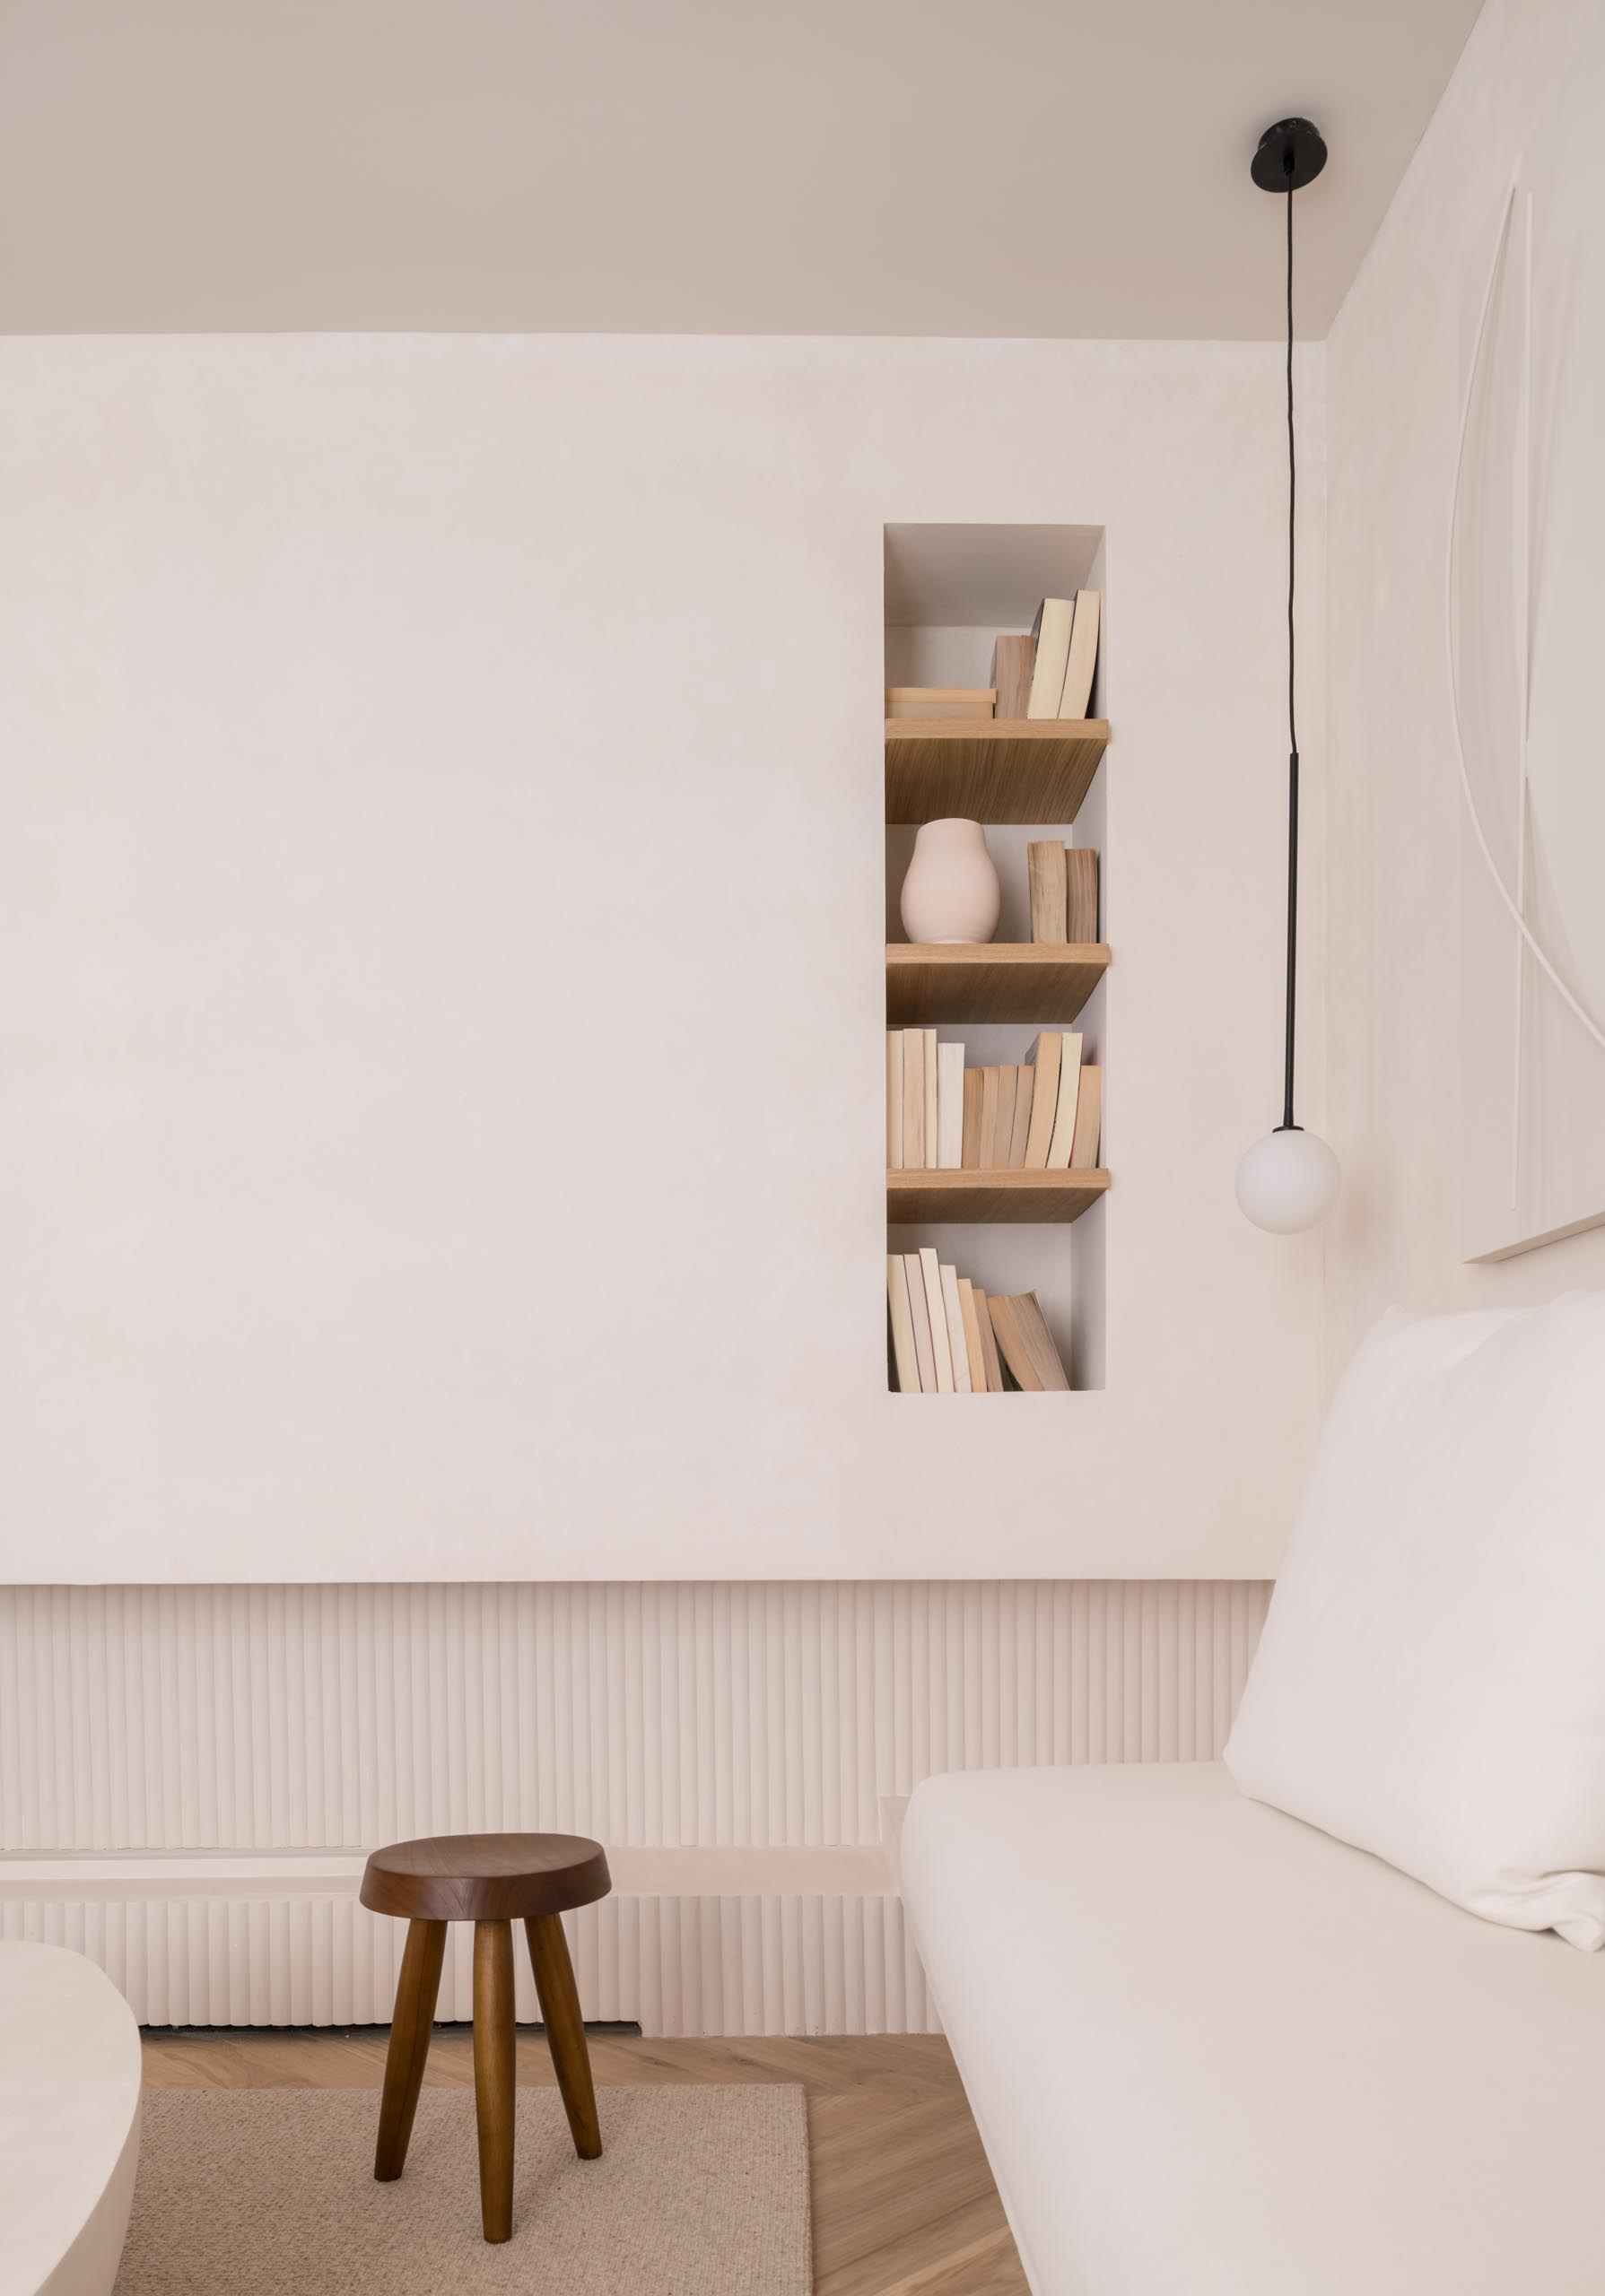 A built-in bookshelf with wood shelves.